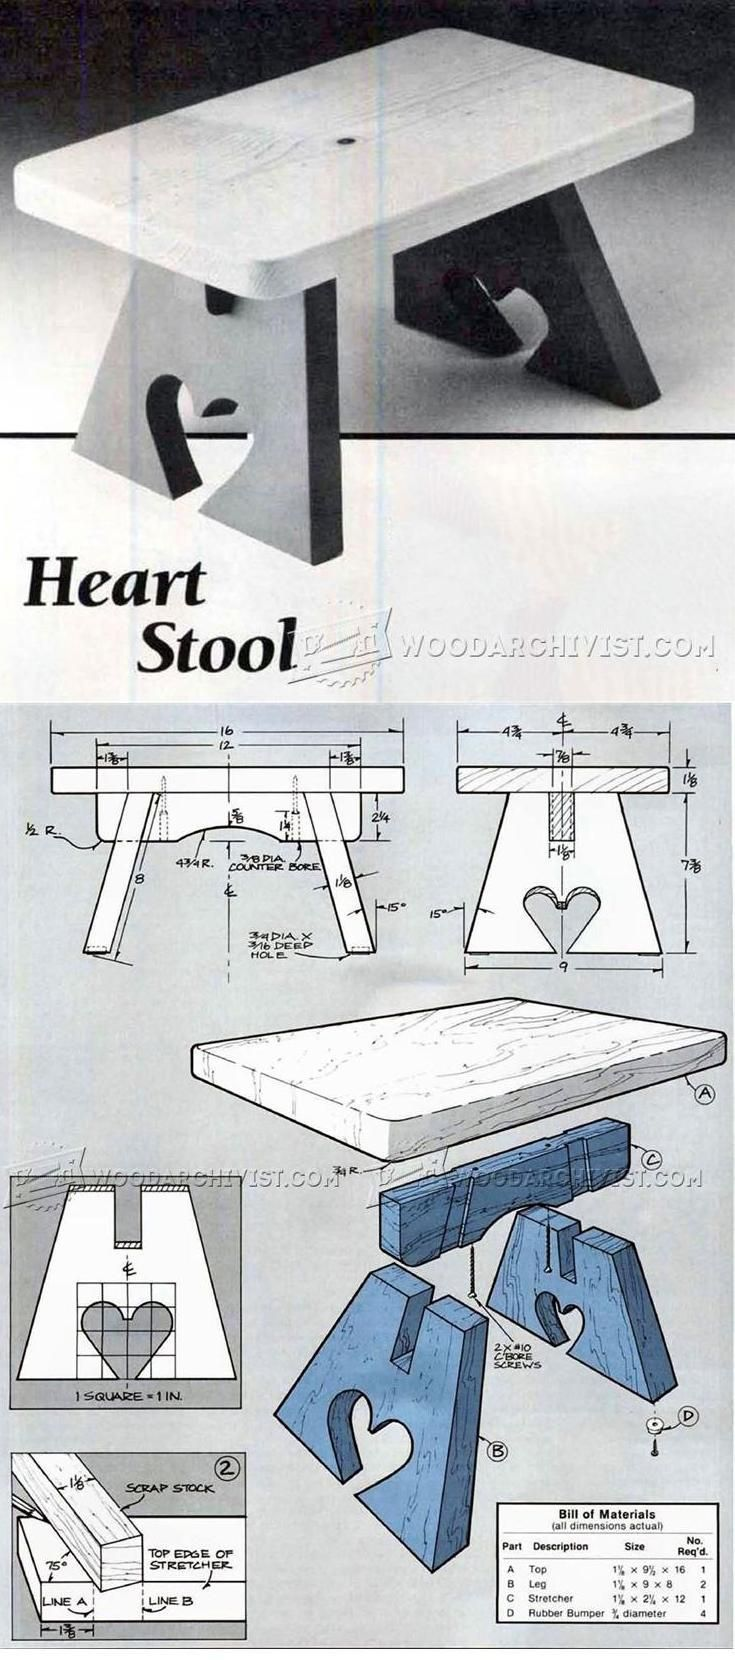 Heart Stool Plan - Furniture Plans and Projects | WoodArchivist.com